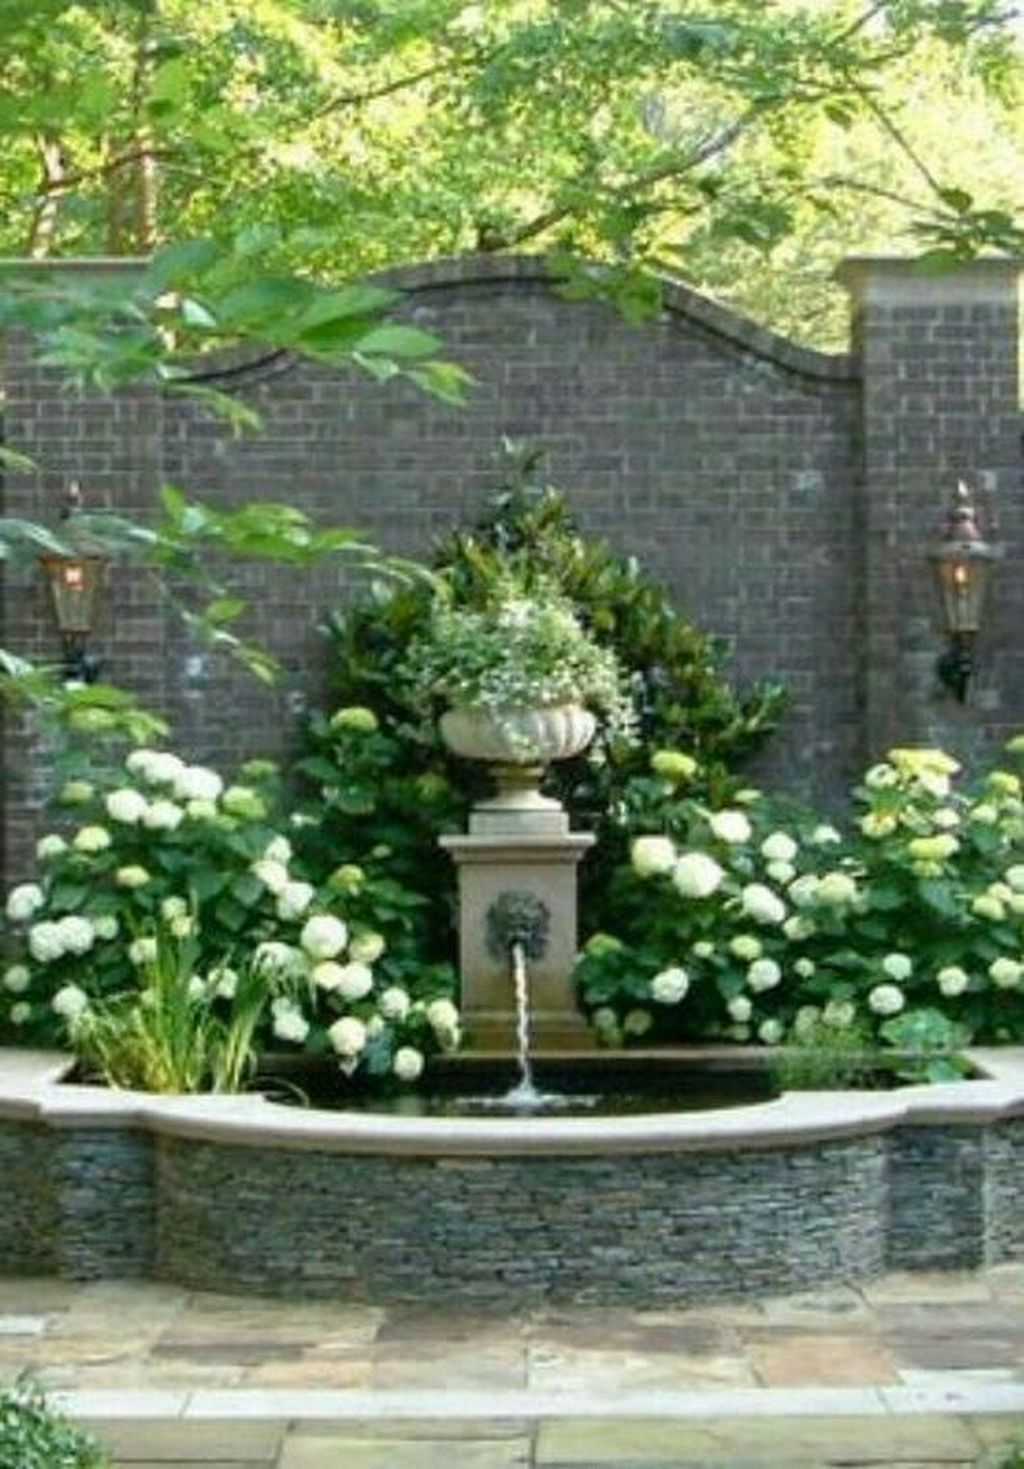 30+ Unordinary Water Feature Front Yard Backyard Landscaping Ideas - TRENDEDECOR #waterfeatures